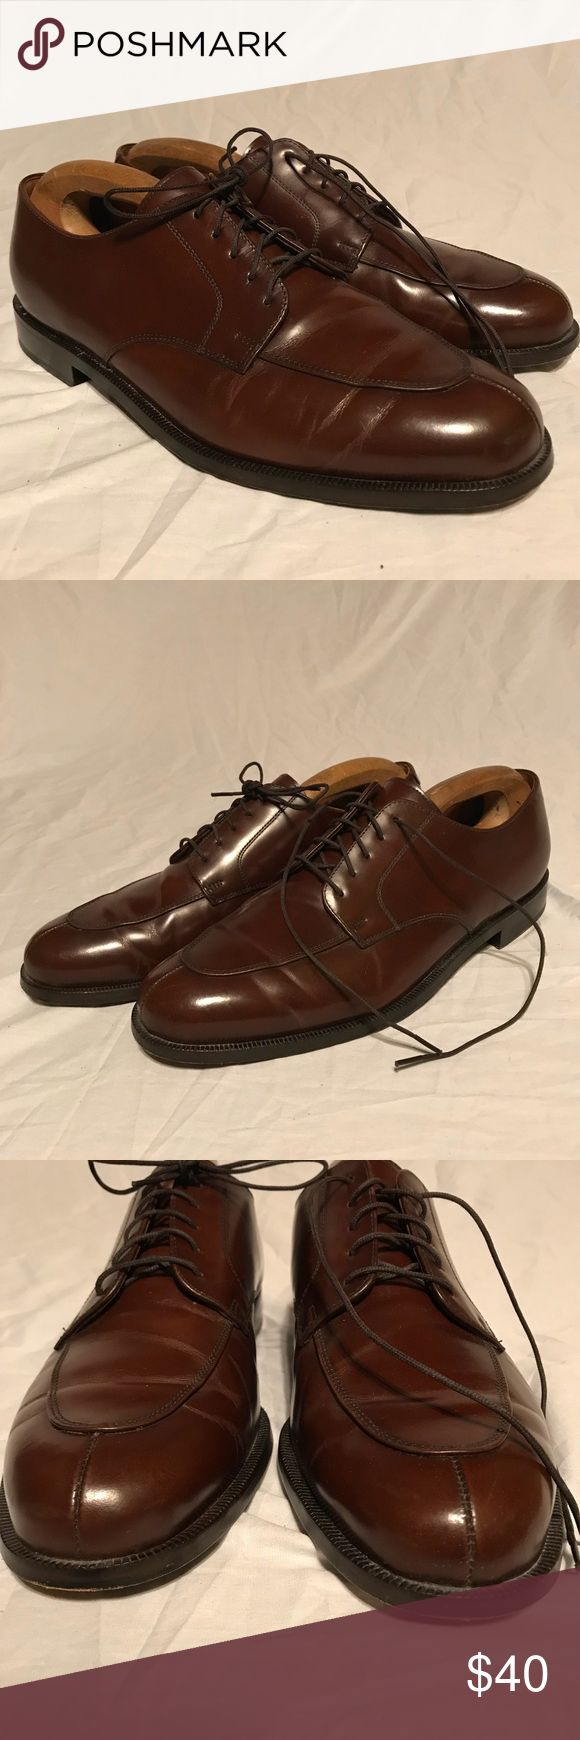 Cole Haan City Split Toe Derby Brown 11.5M Great condition. Little sole wear. No leather damage. Moderate creasing. Make offers. Cole Haan Shoes Oxfords & Derbys